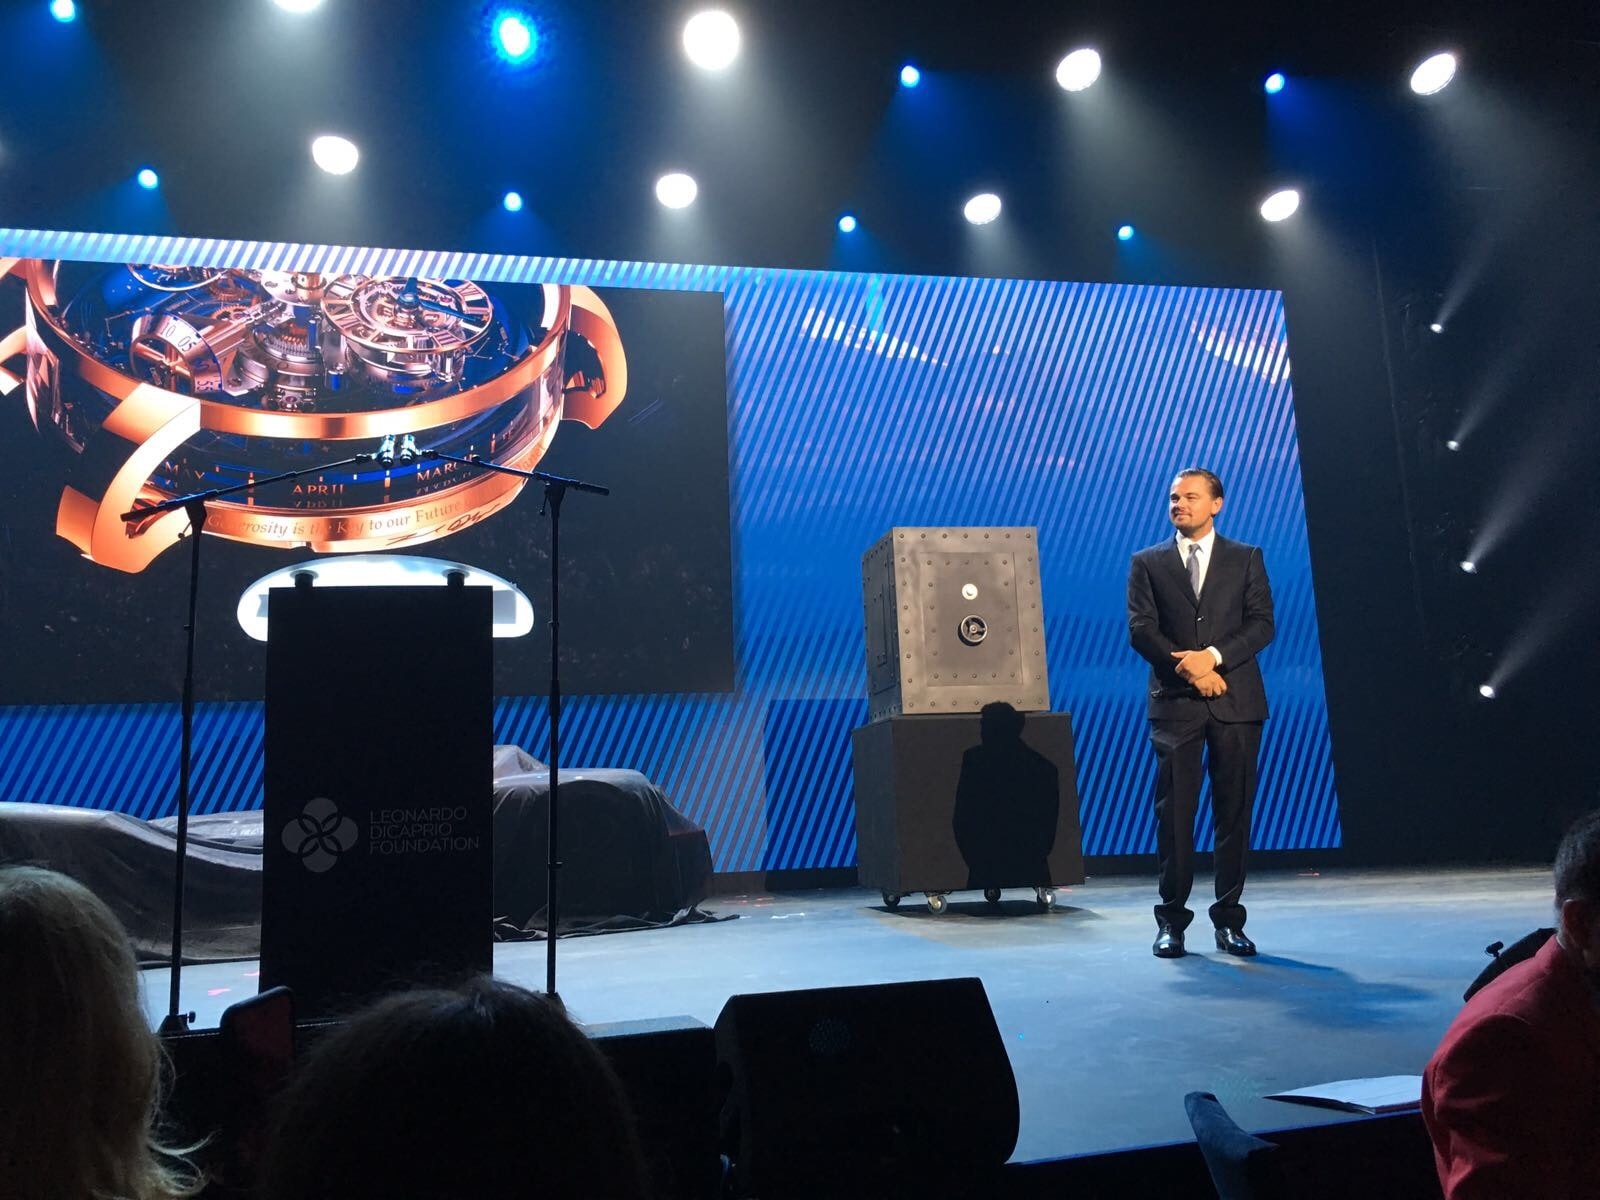 Leonardo DiCaprio on stage with the Astronomia Sky.  Auction Report: Jacob & Co. Astronomia Sky Unique Piece Sold At Leonardo DiCaprio Foundation Benefit In St. Tropez (For An Undisclosed Amount) LD Jacob Watch Stage